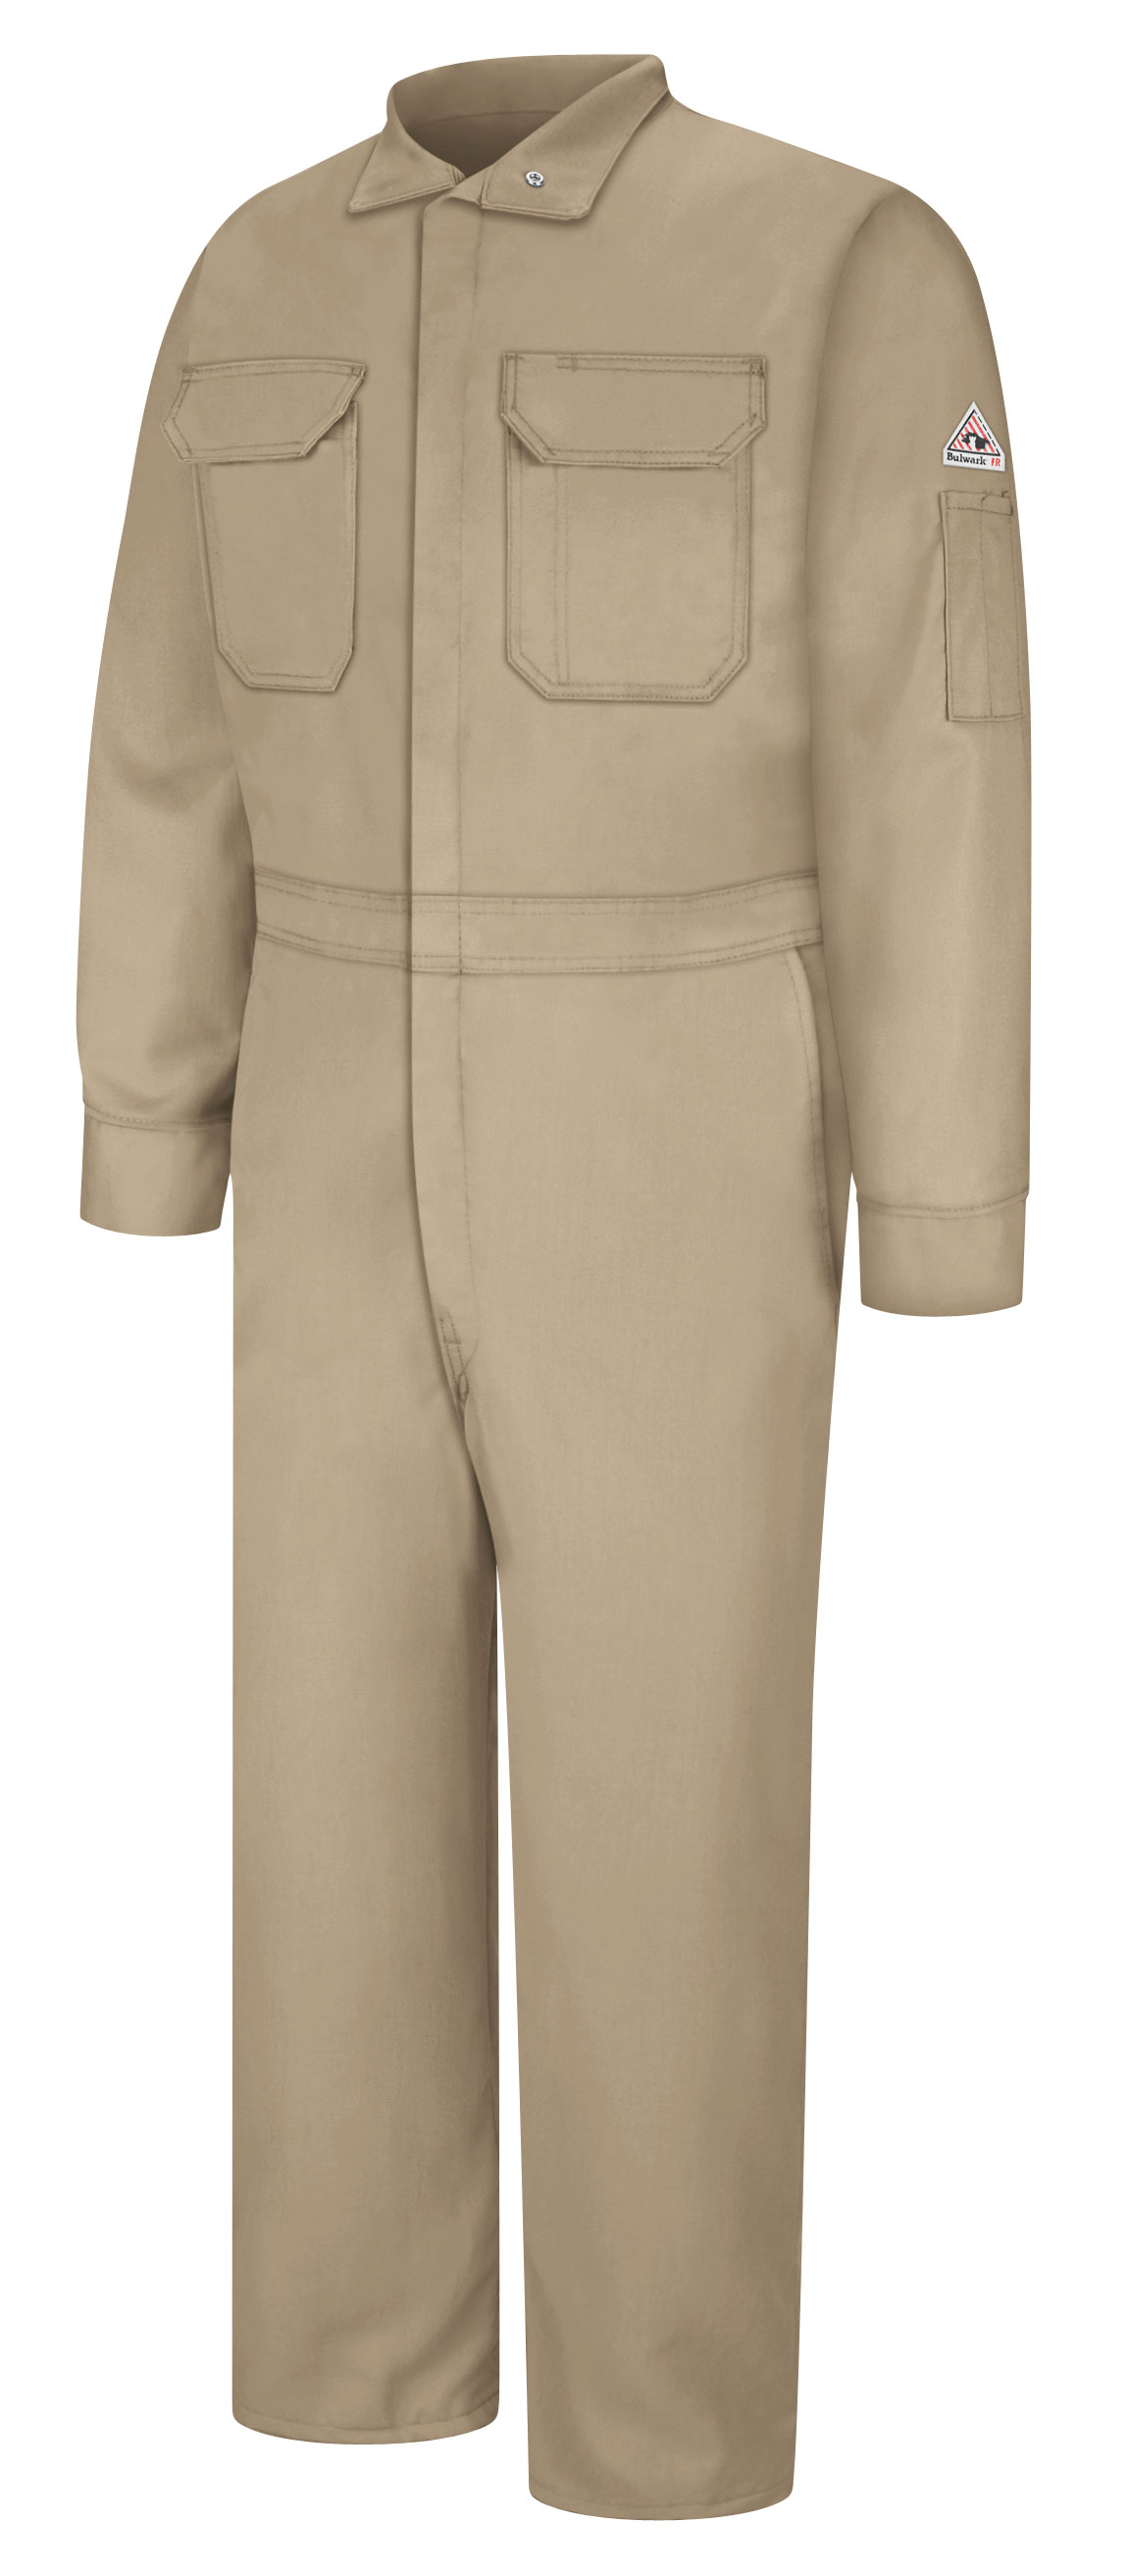 Bulwark® CAT1 Flame Resistant Deluxe Coverall